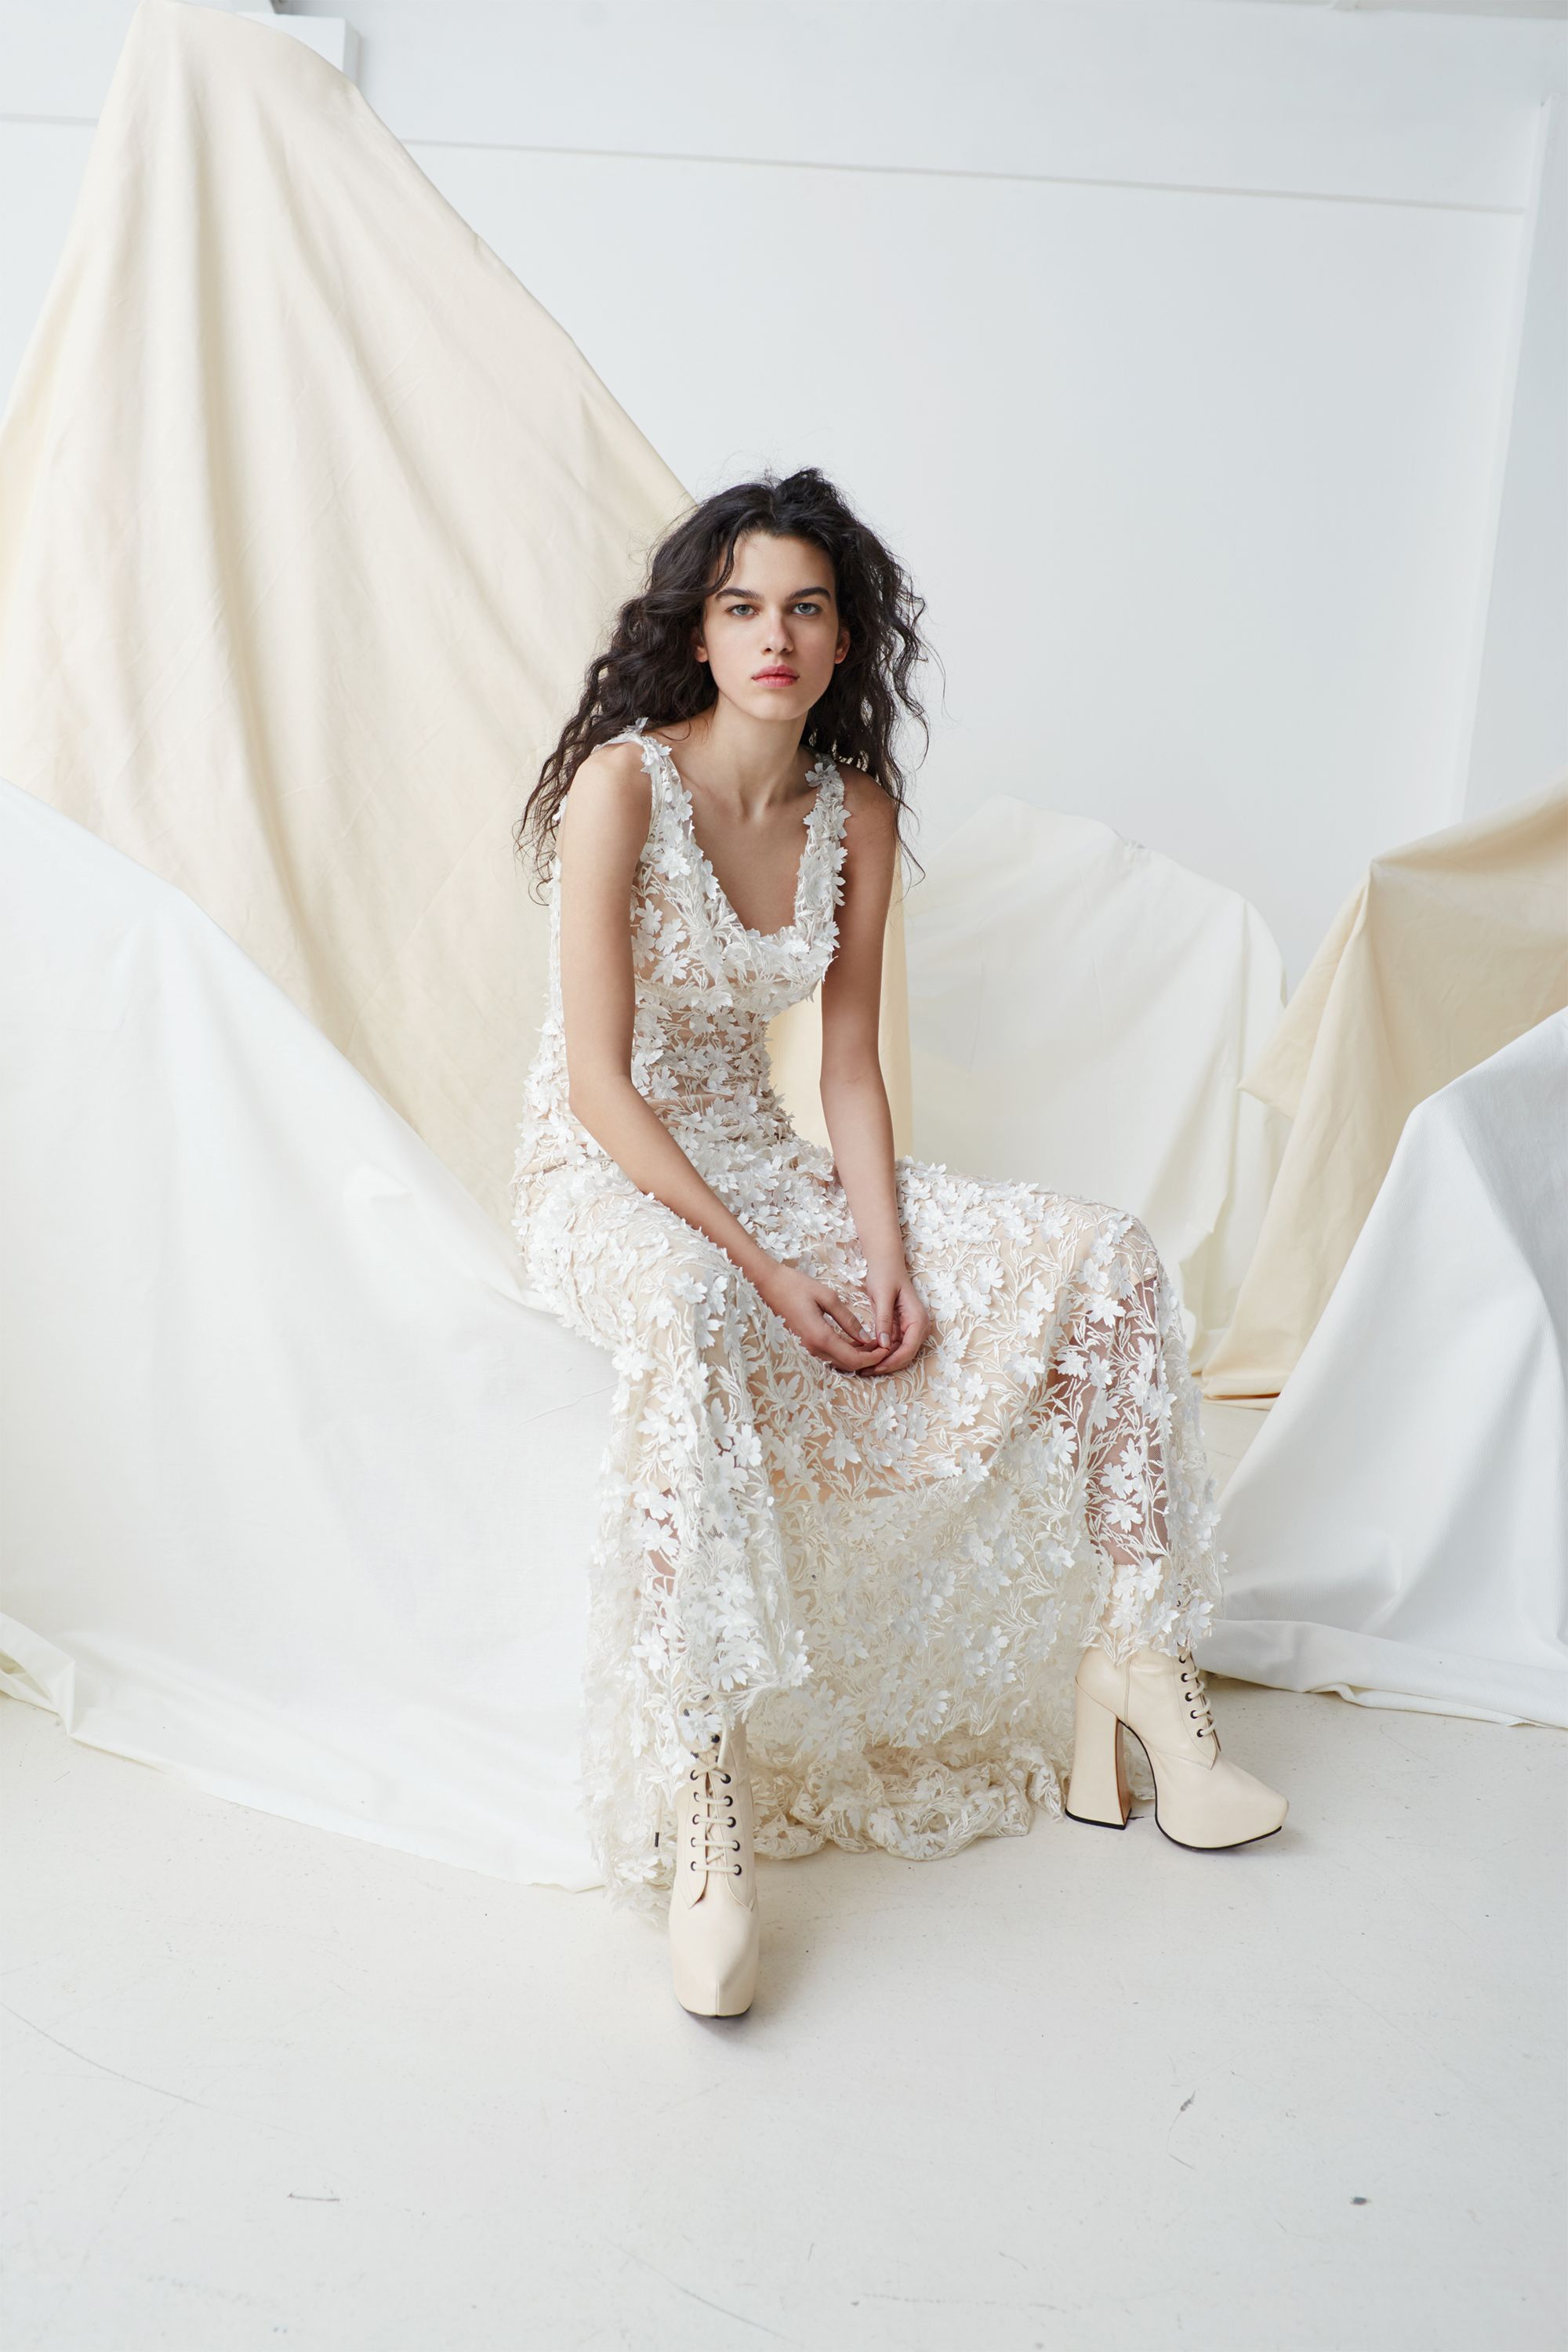 Vivenne Westwood Wedding Dresses.Exclusive Vivienne Westwood Bridal Collection Is Now Available In